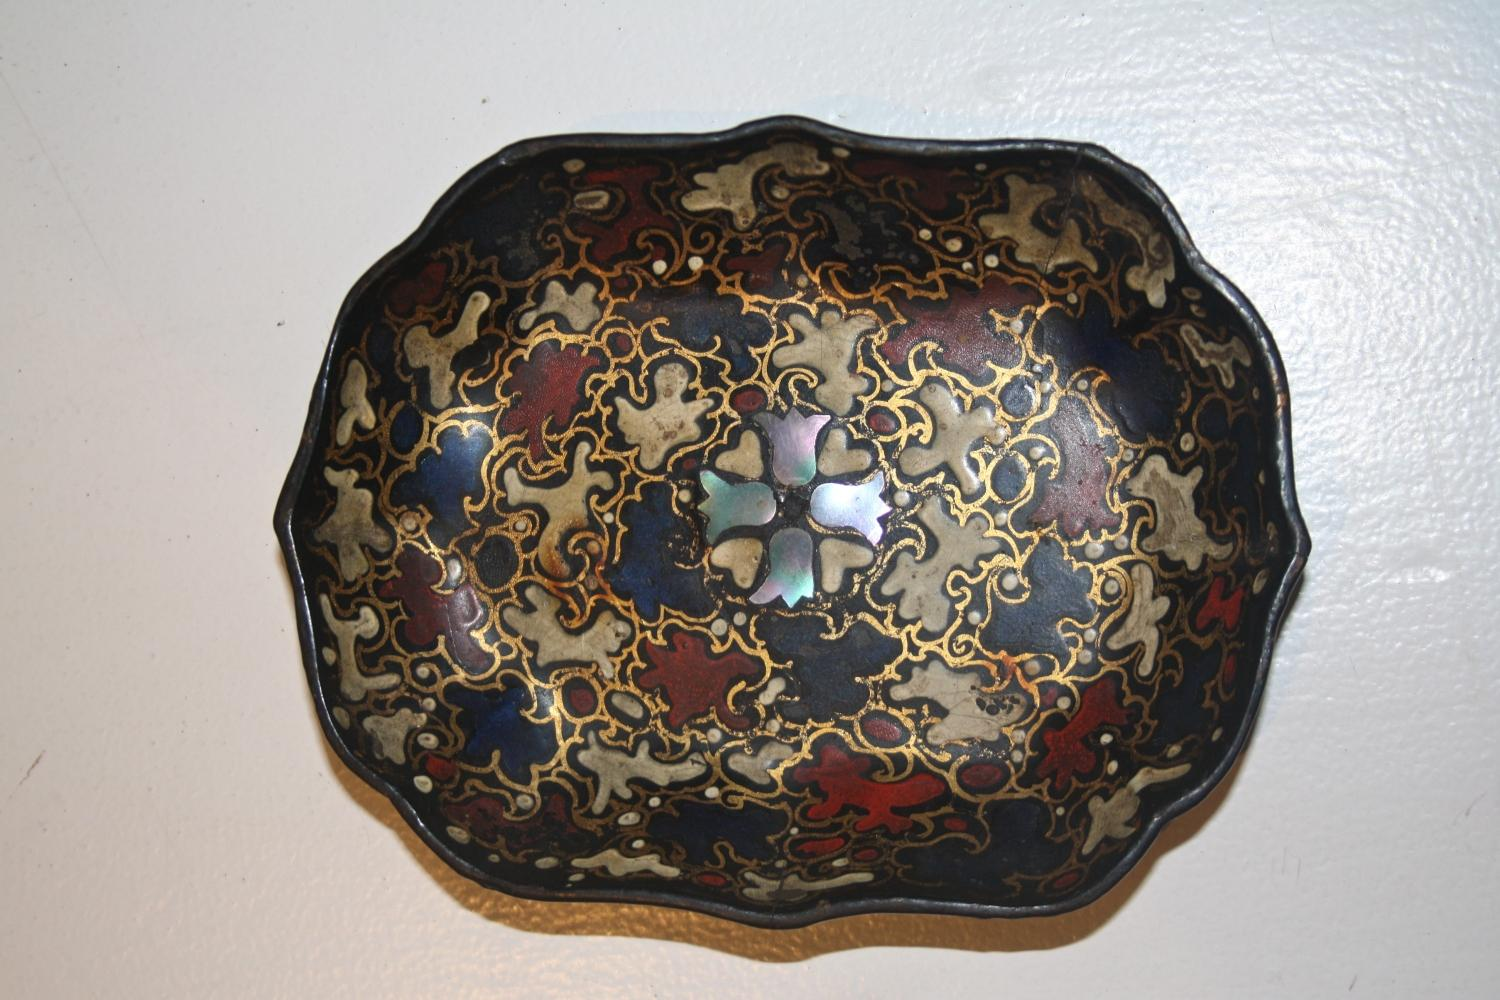 Papier Mache Dish with Mother of Pearl Inlay